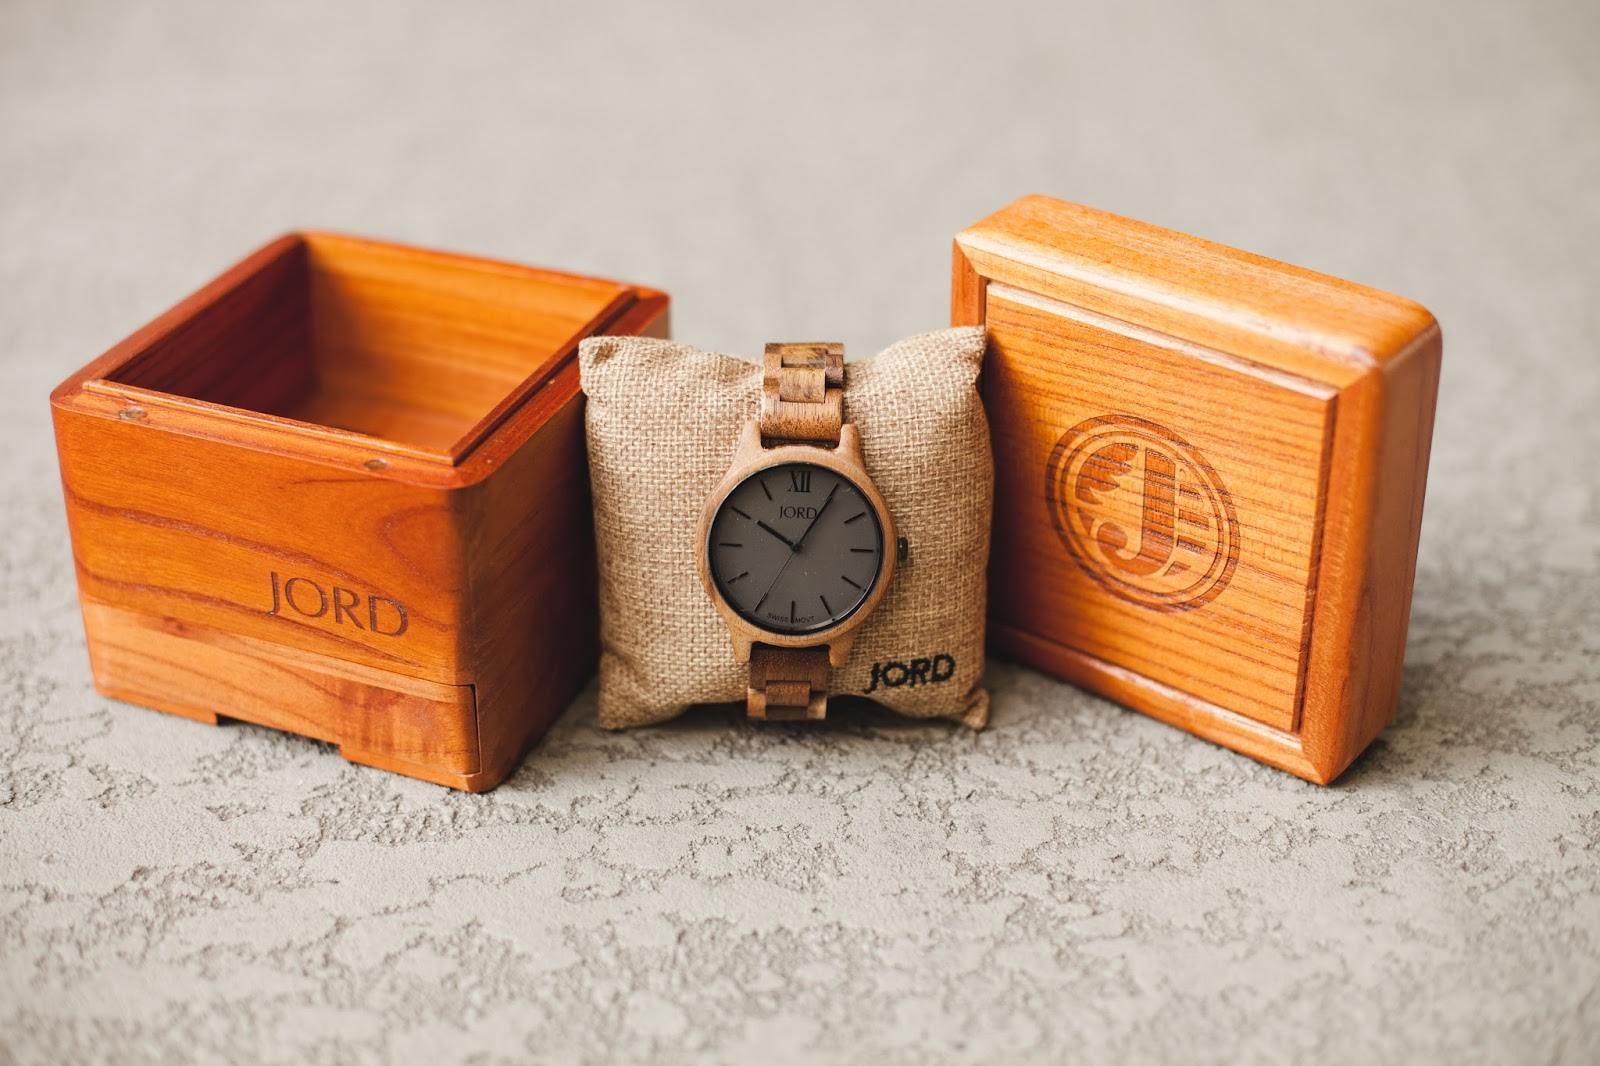 JORD Watches | Gift for Him or Her